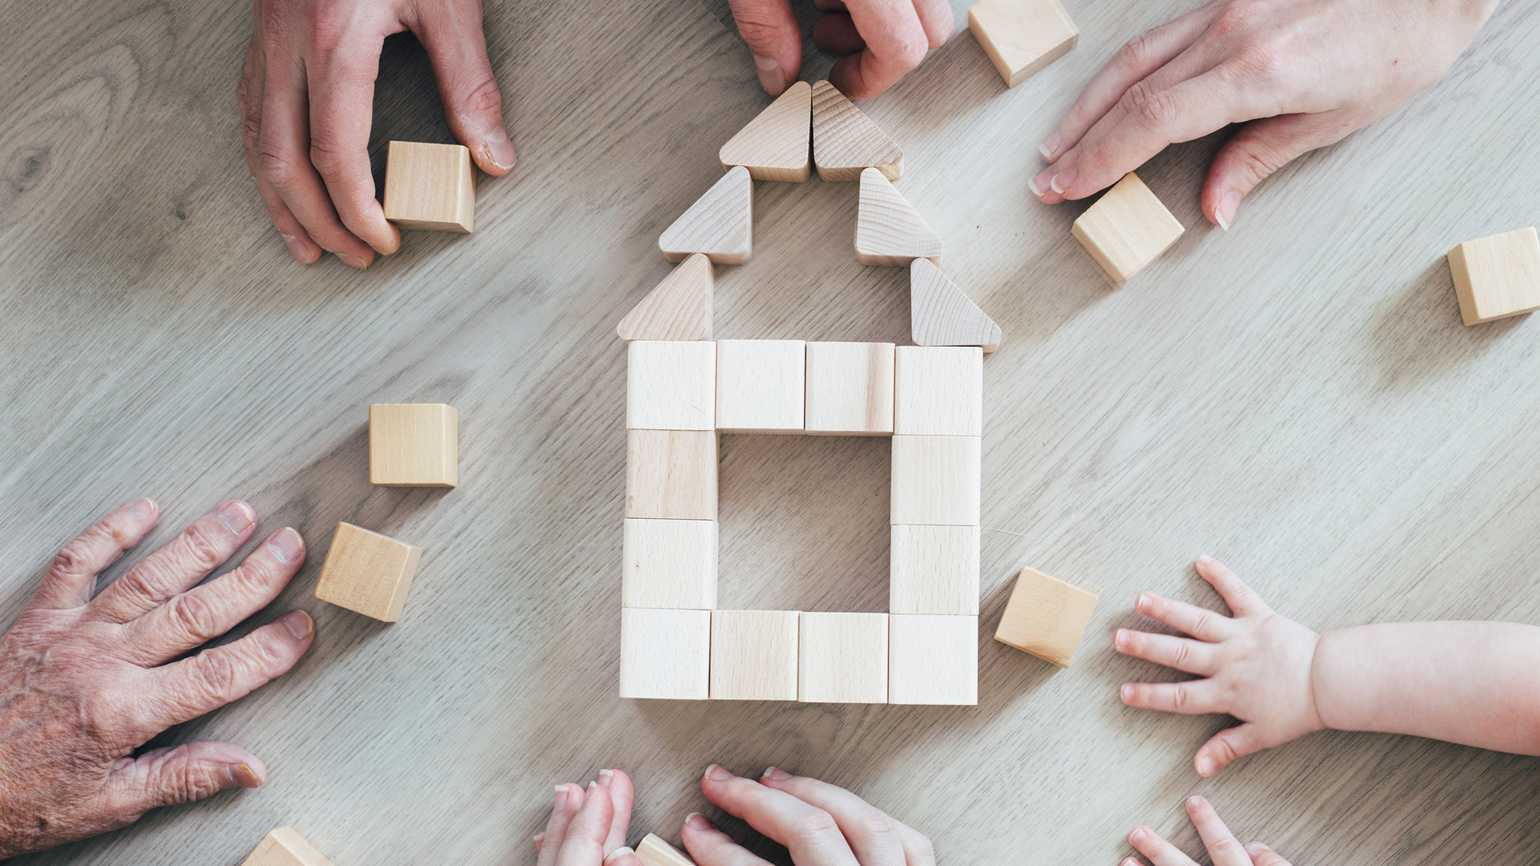 Family members using wooden blocks to form a house.